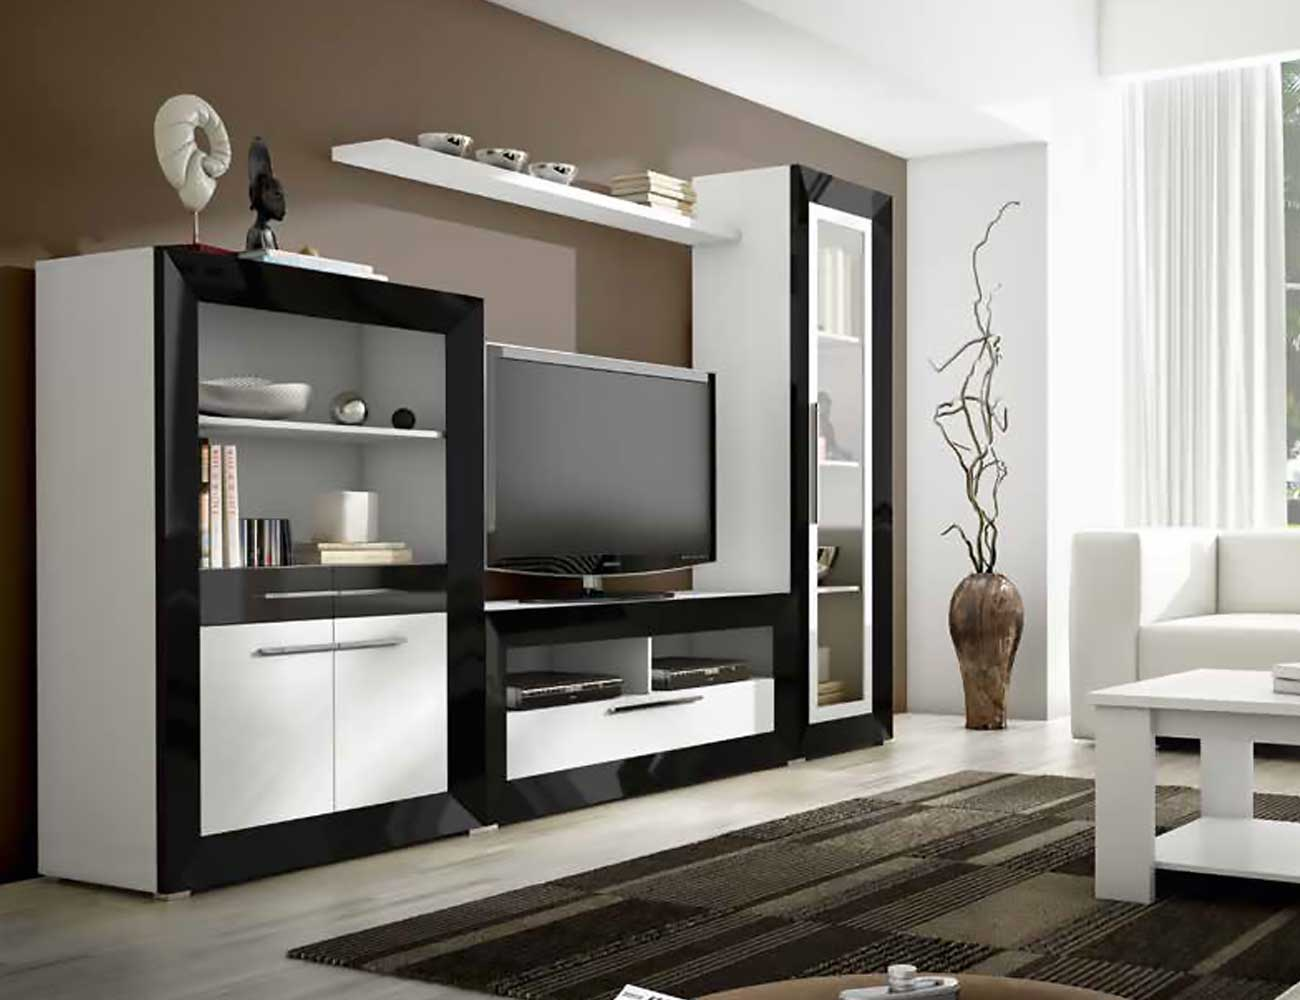 Mueble de sal n moderno en blanco con negro 2401 for Mueble salon moderno blanco